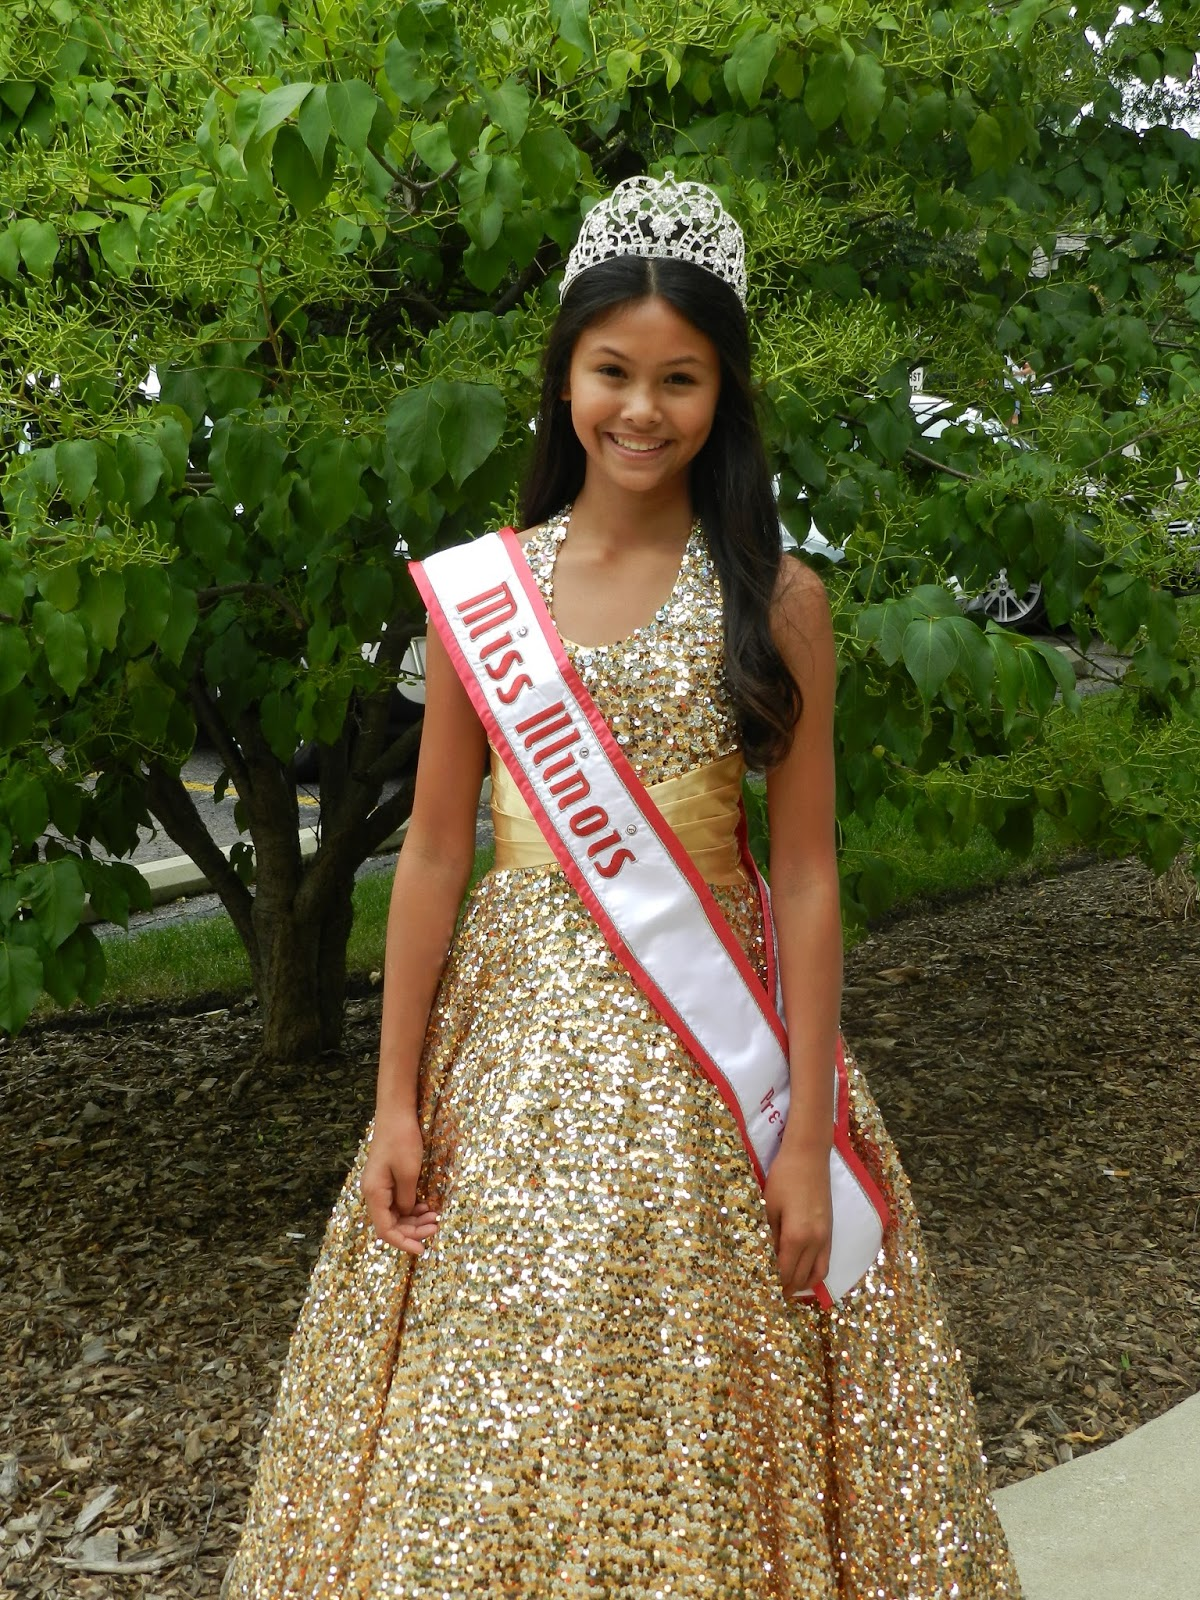 Pre Teen Model Gallery: Barbizon Midwest Review: Taylor Castro's Crowning Moment